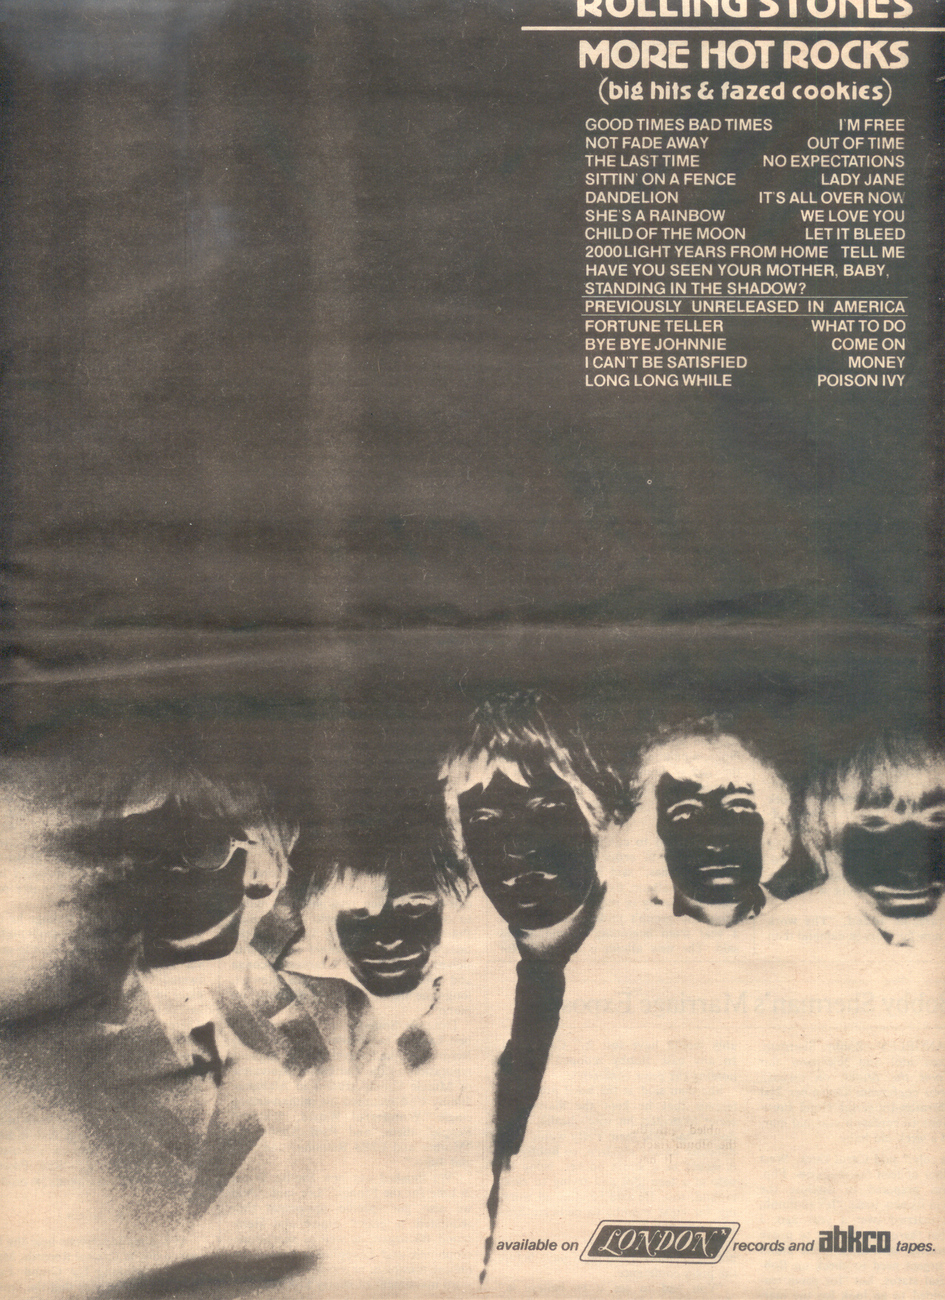 Rolling stones more hot rocks ad